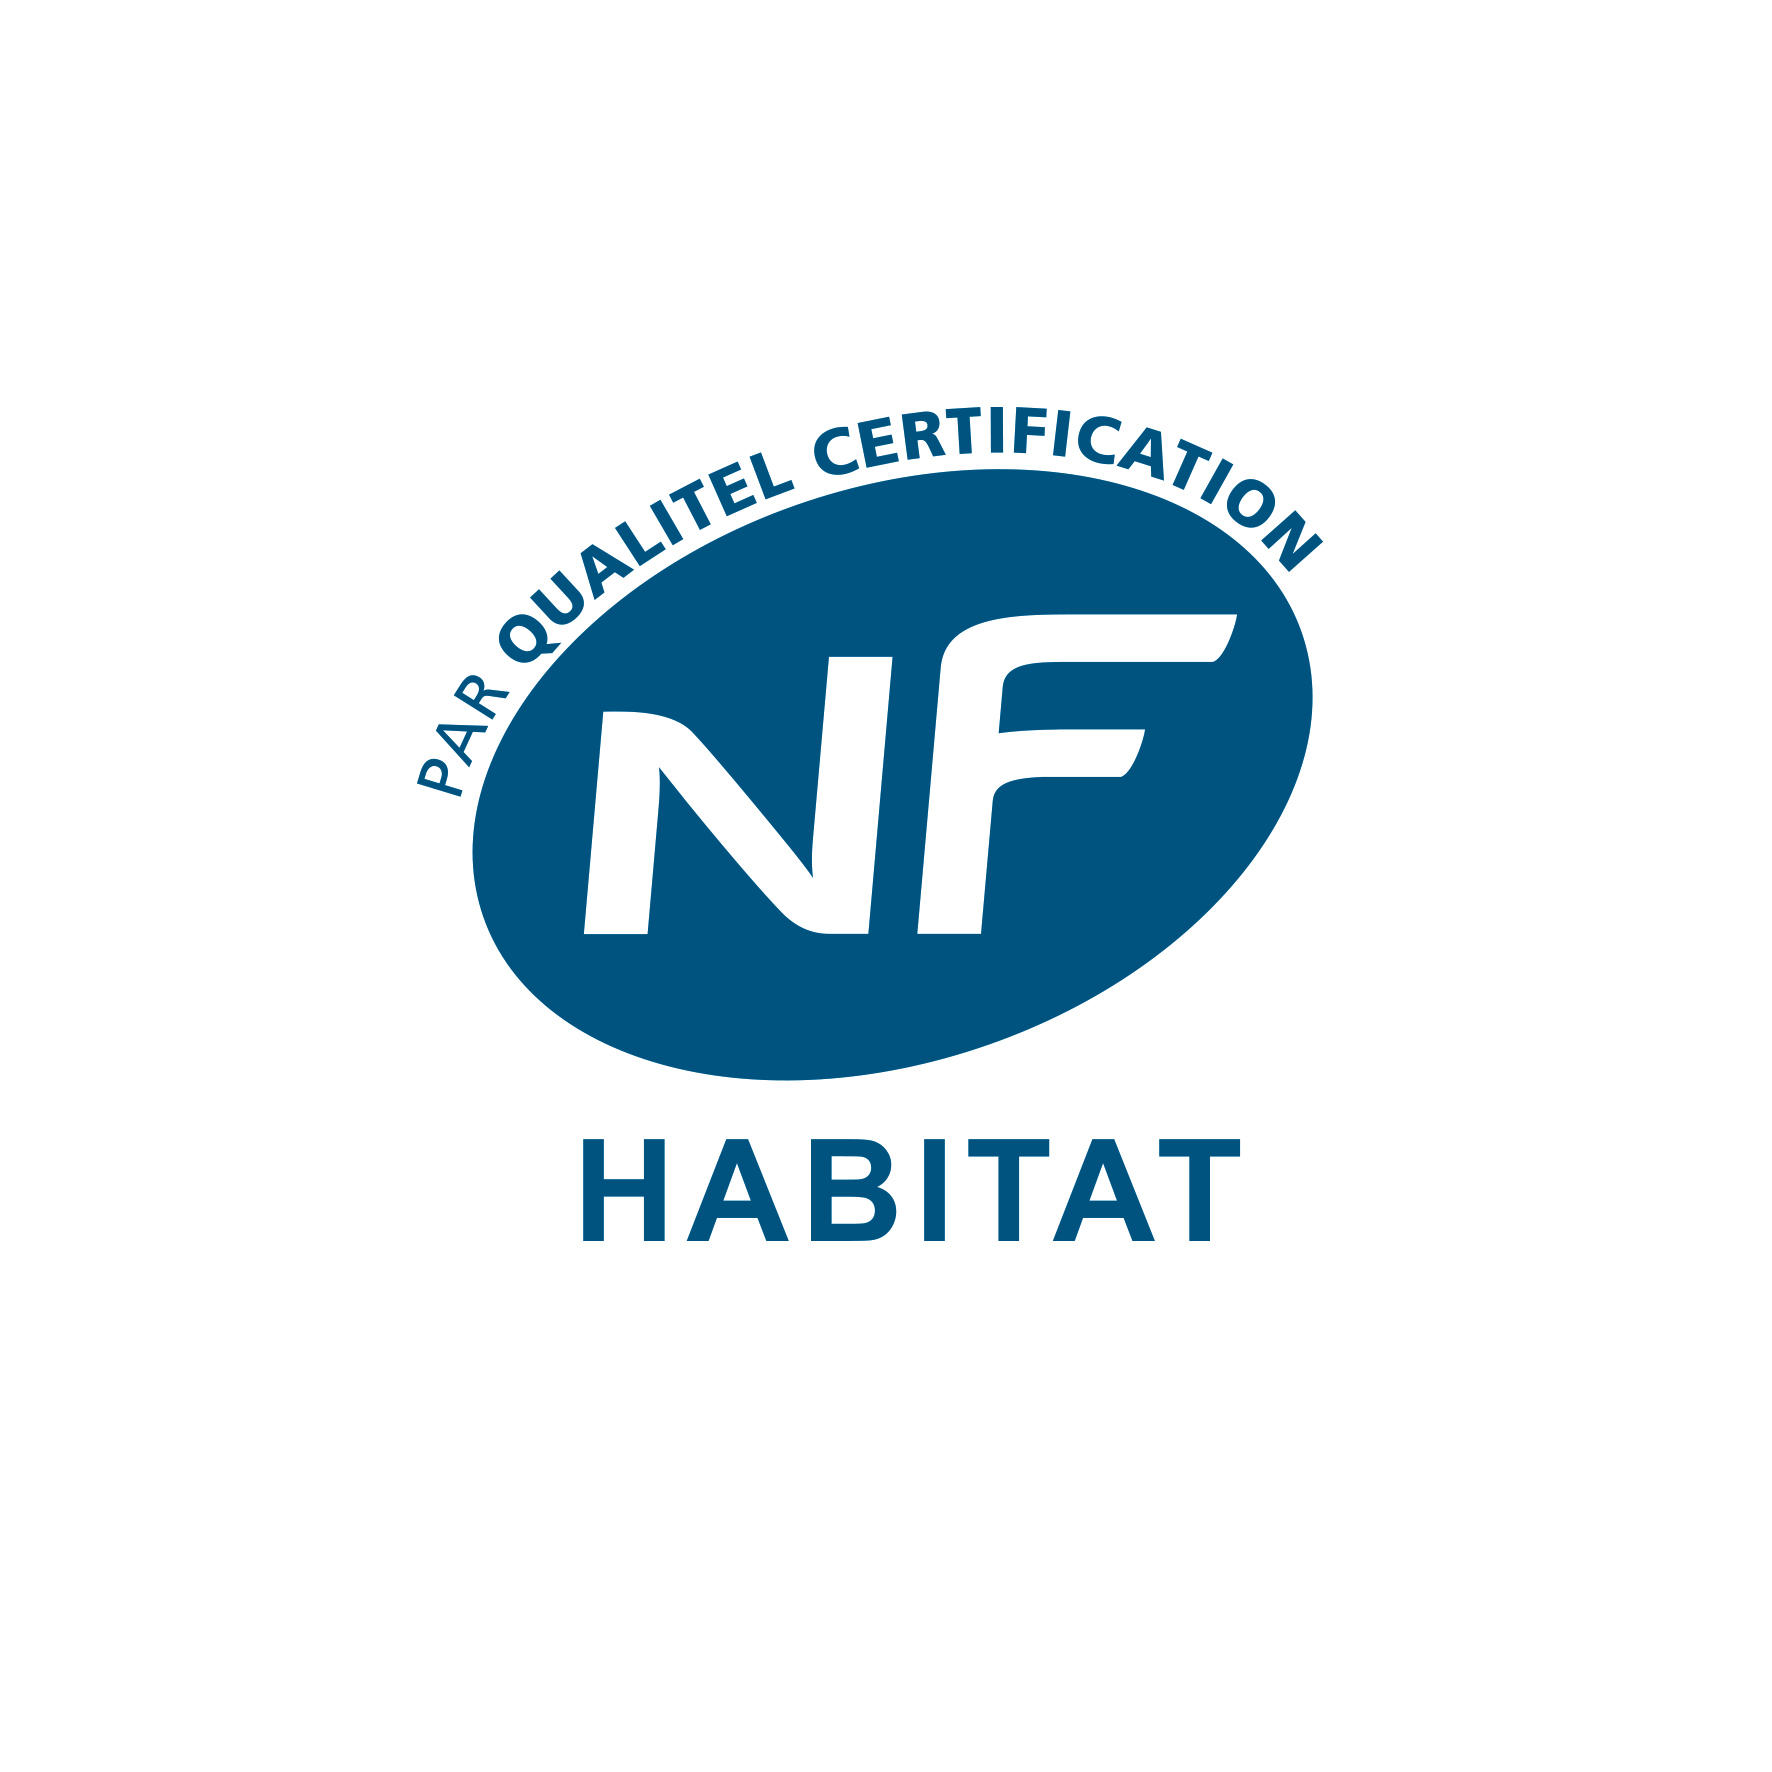 NF Habitat Construction ou Rénovation Maison par chantier avec label Energie et/ou Carbone